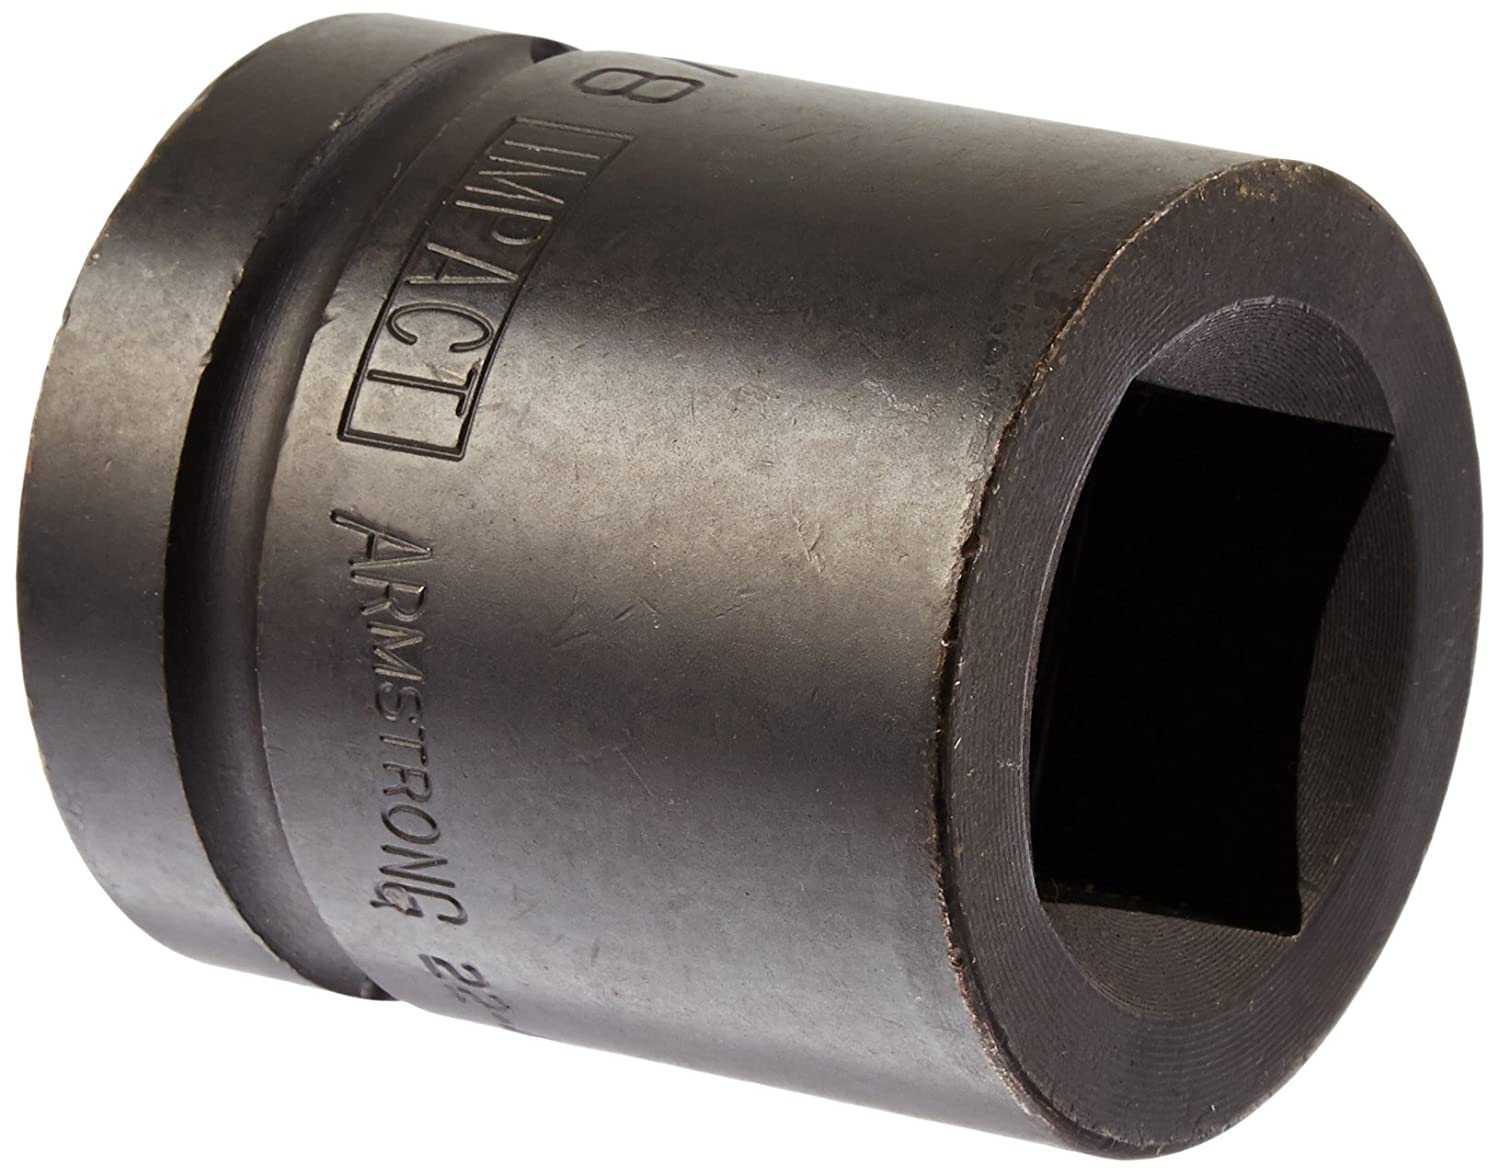 Armstrong 22-436 1-Inch Drive 4 Point 1-1/8-Inch Impact Socket by Armstrong  B00004WAYY